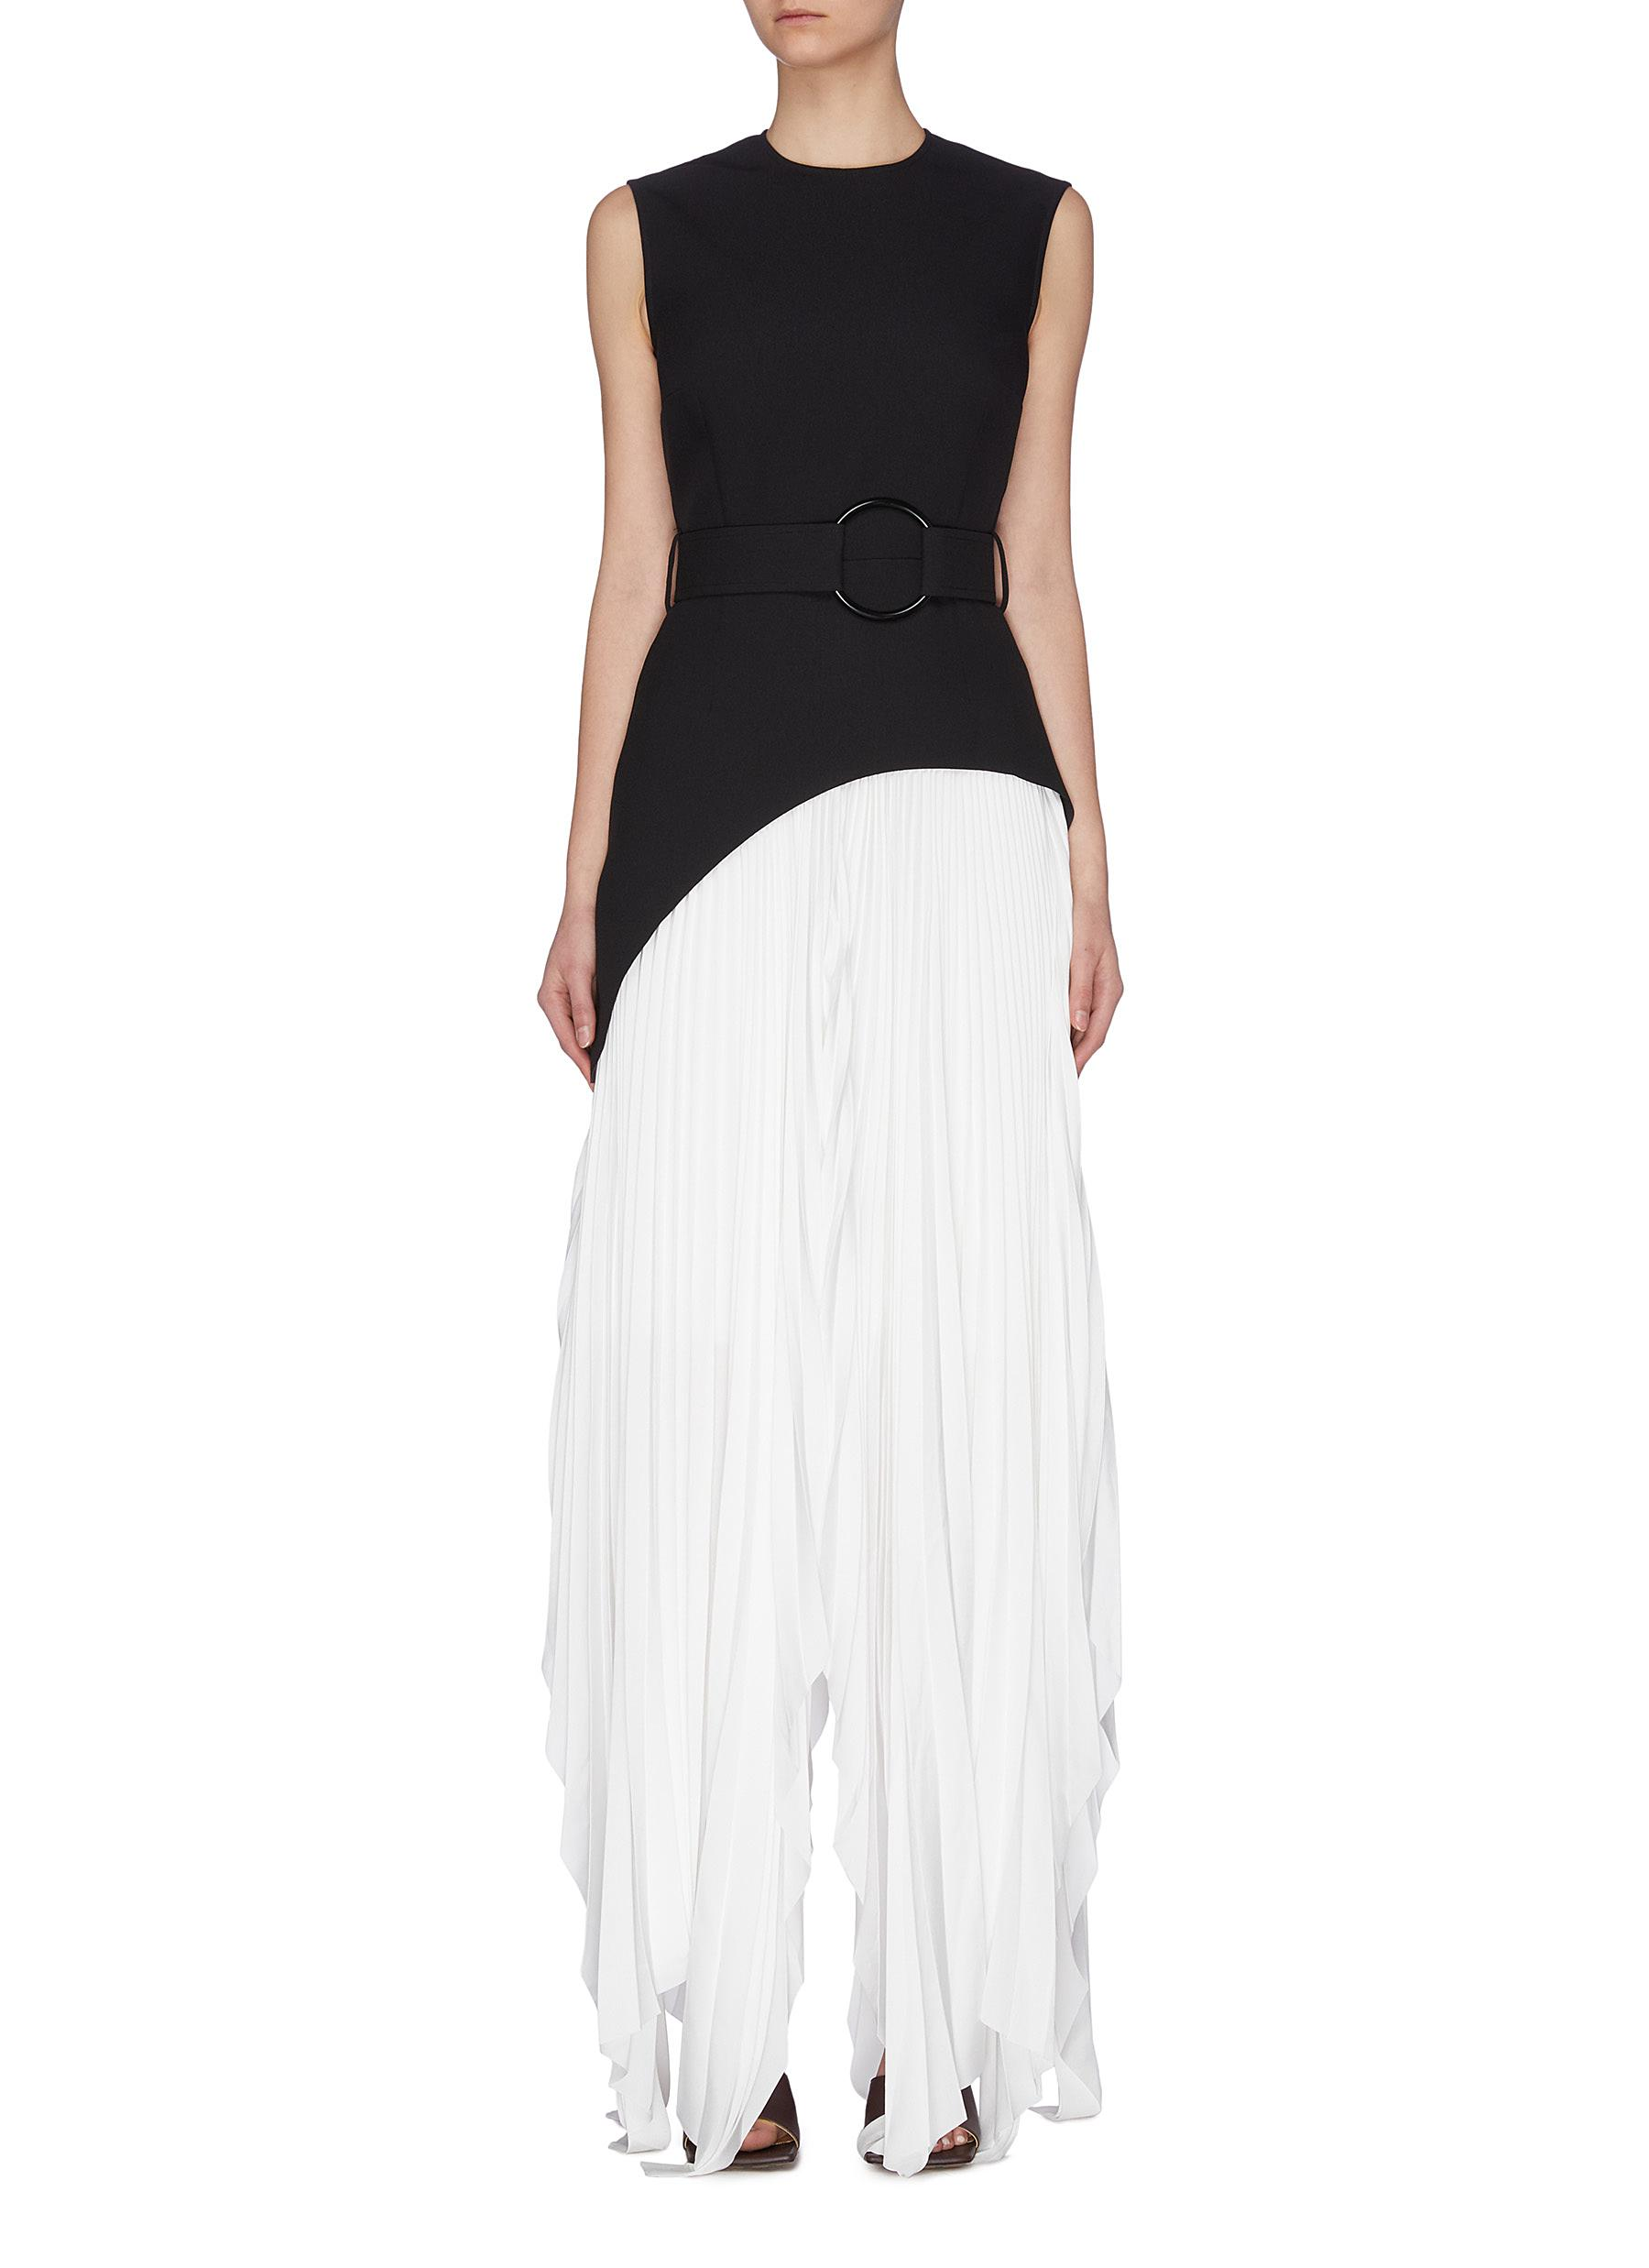 Buy Solace London Dresses 'Anya' belted sleeveless asymmetric pleated maxi dress